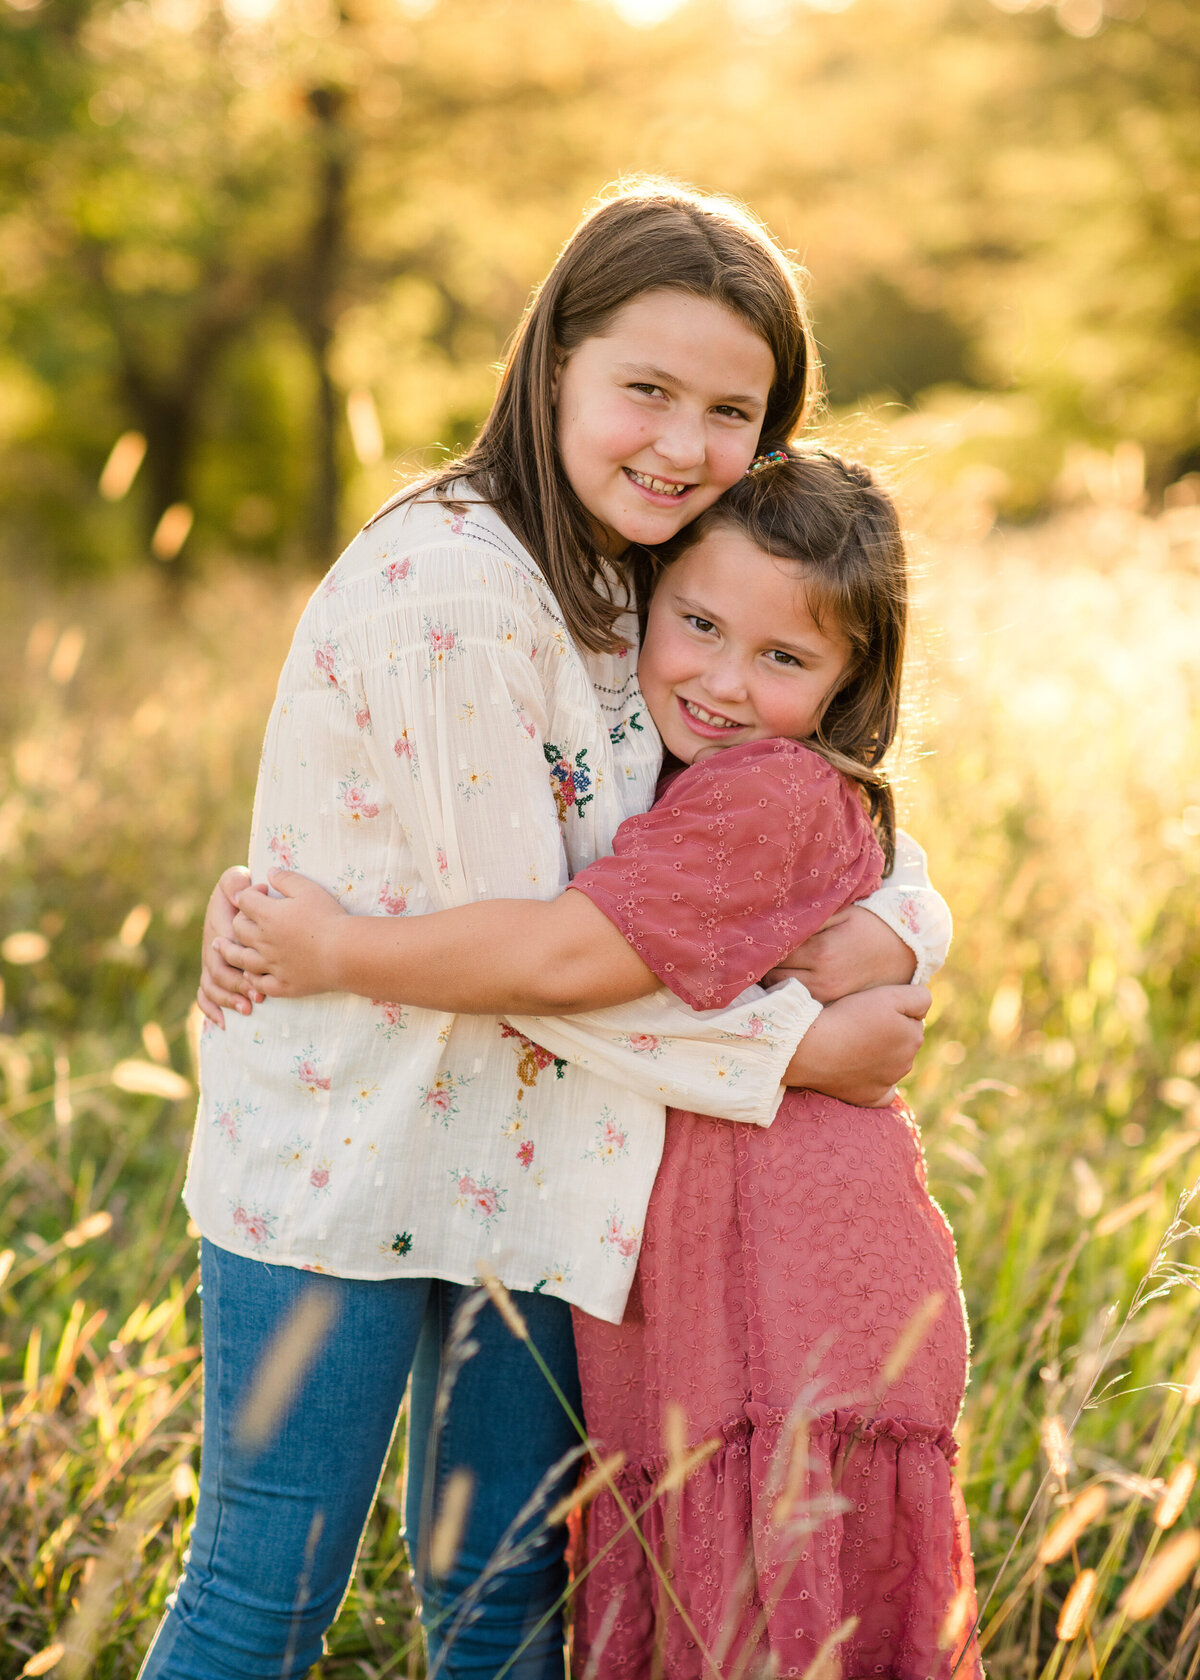 Des-Moines-Iowa-Family-Photographer-Theresa-Schumacher-Photography-Golden-Hour-Grass-Sisters-Hugging